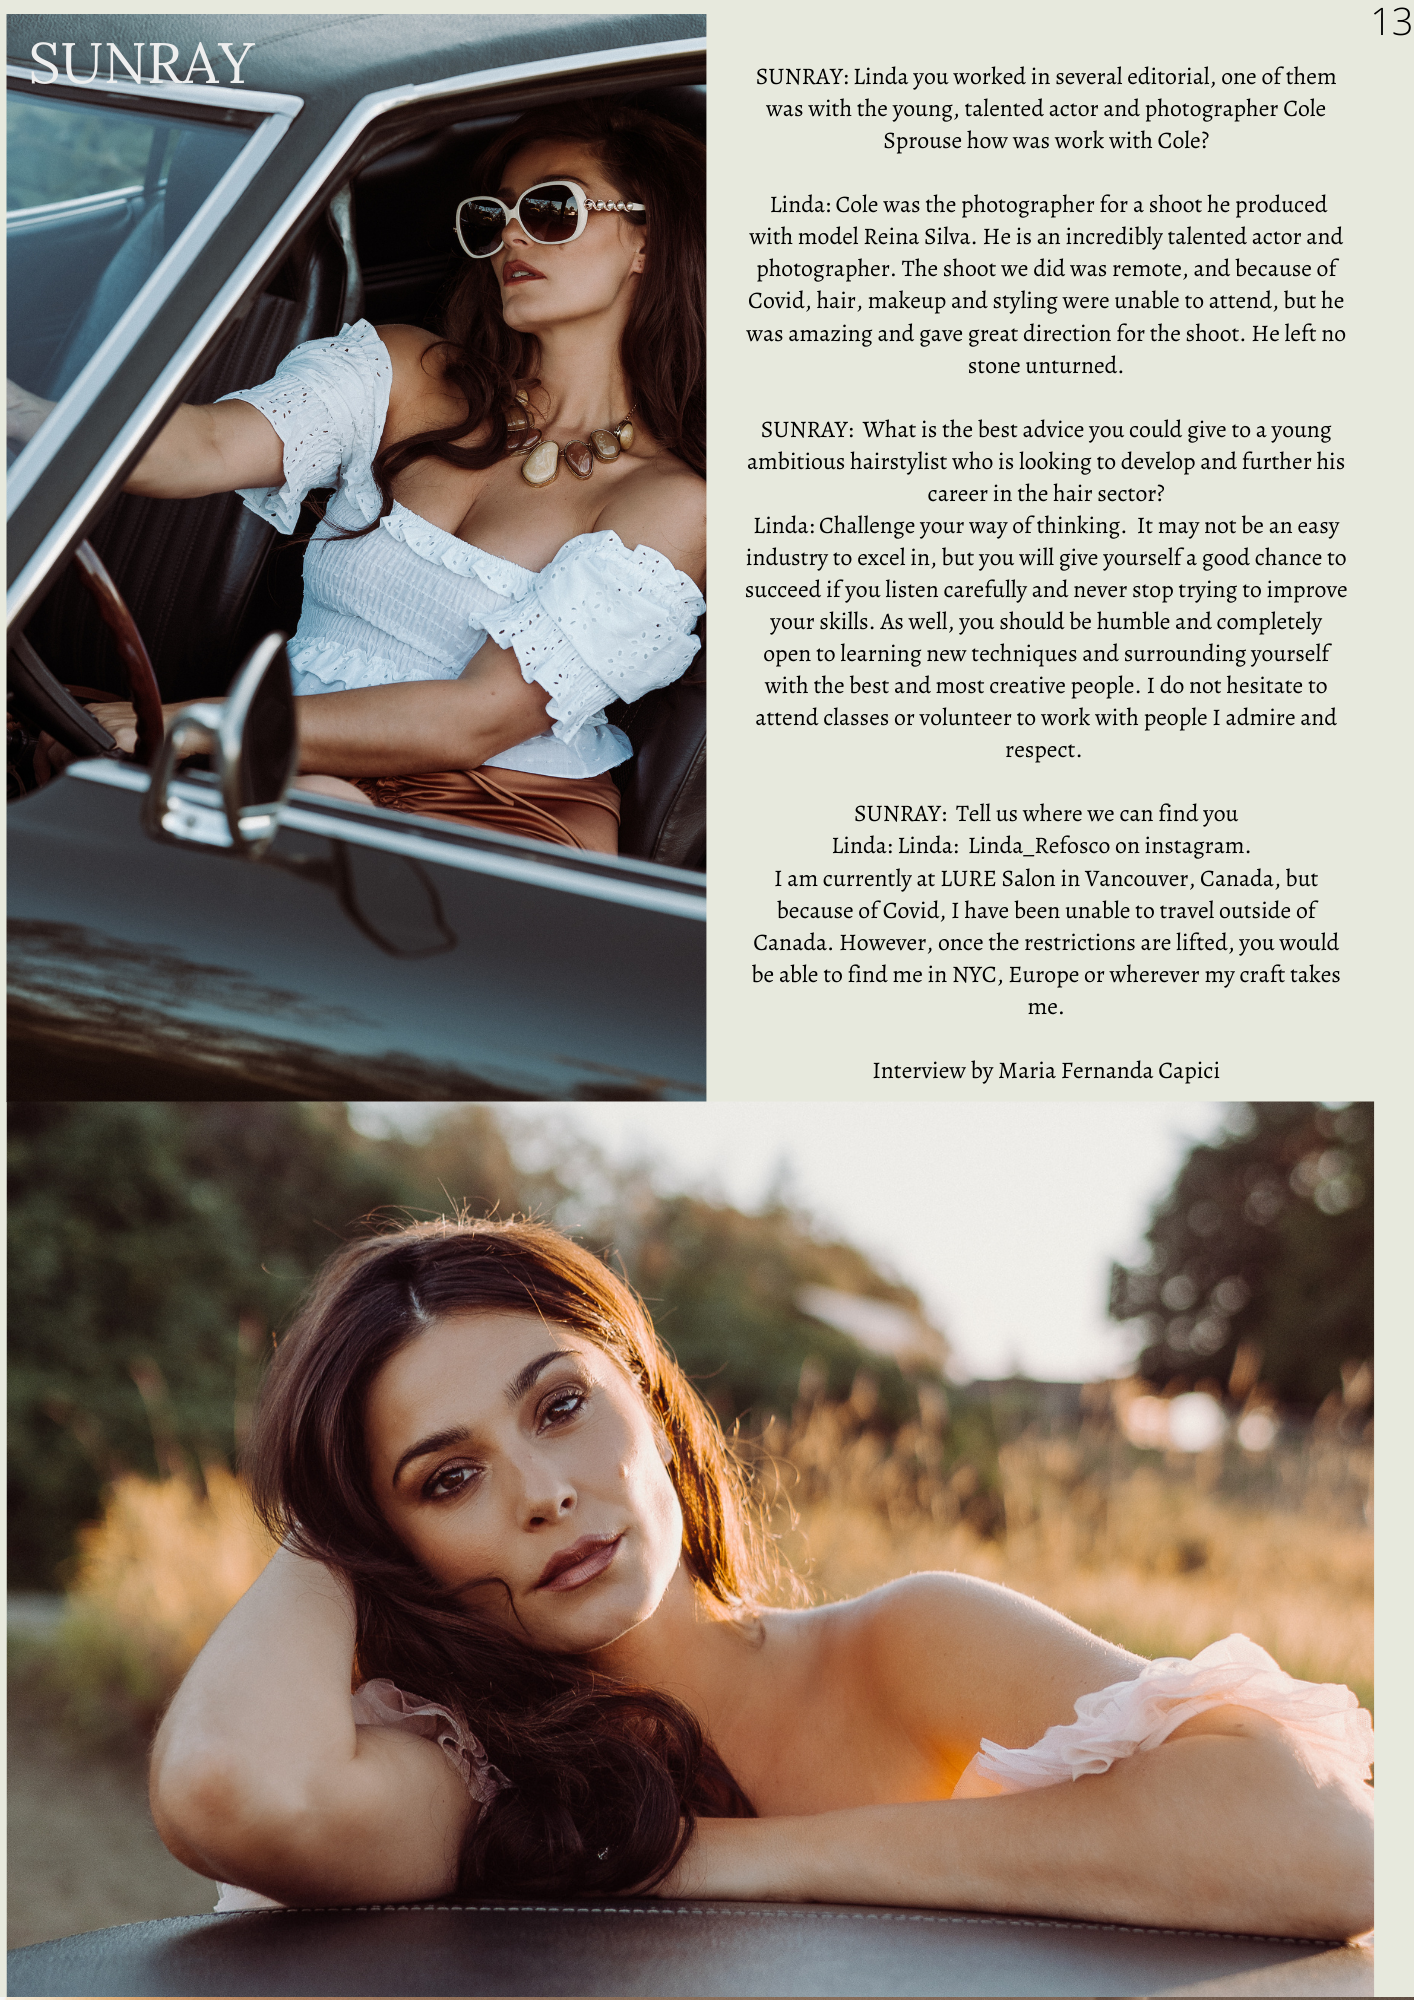 Celebrity Hairstylist Linda Refosco Speaks to Sunray Magazine on what it's like to work with Hollywood's Hottest Celebrities. Image features two models with long brown hair in the countryside, shot by Cole Sprouse